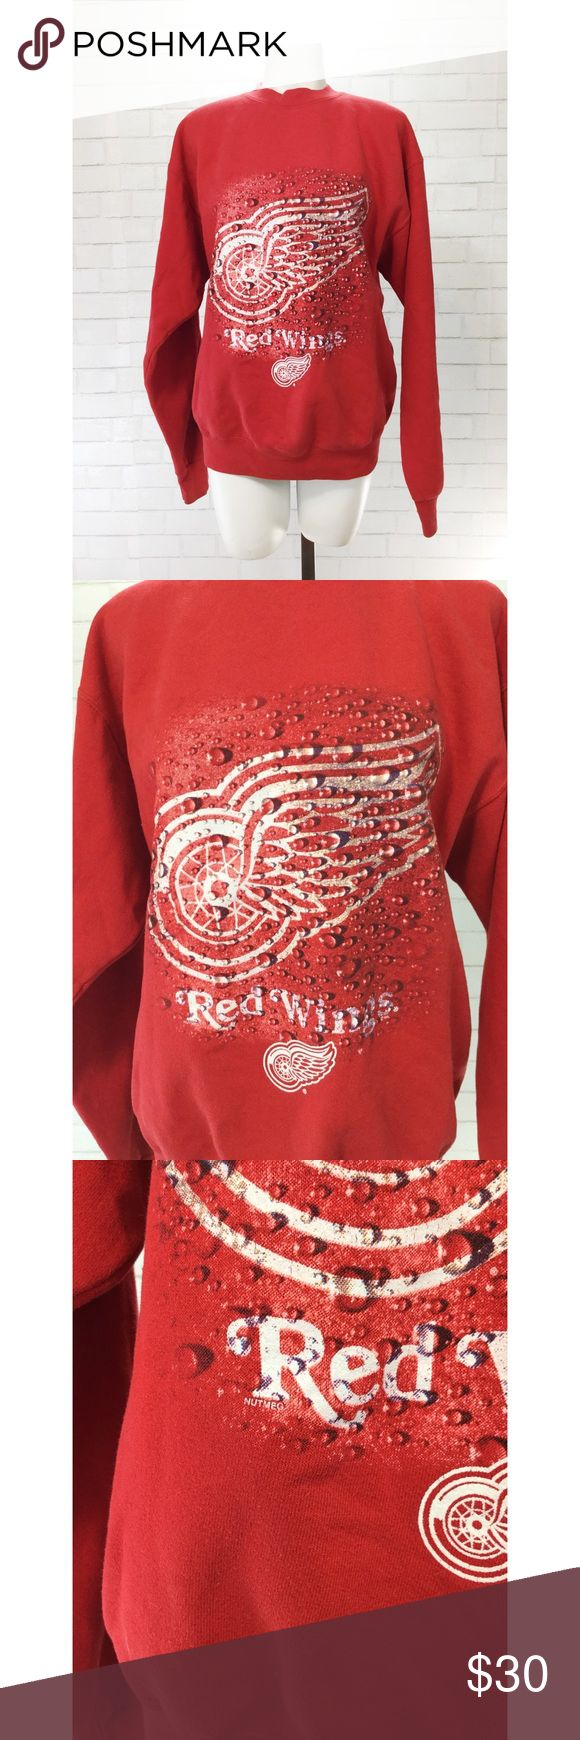 """Vintage 90s Detroit Red Wings NHL Nutmeg Sweatshir Vintage 90s Detroit Red Wings NHL Nutmeg Sweatshirt EUC. Rare Red Wings pullover by nutmeg mills in the 90's. Looks like new. Officially licensed apparel by the NHL. This is a vintage XL which is more like a L today. Cute oversized.   Shoulders = 21"""" Chest = 21"""" Length = 26"""" Sleeve = 24"""" Nutmeg Tops Sweatshirts & Hoodies"""